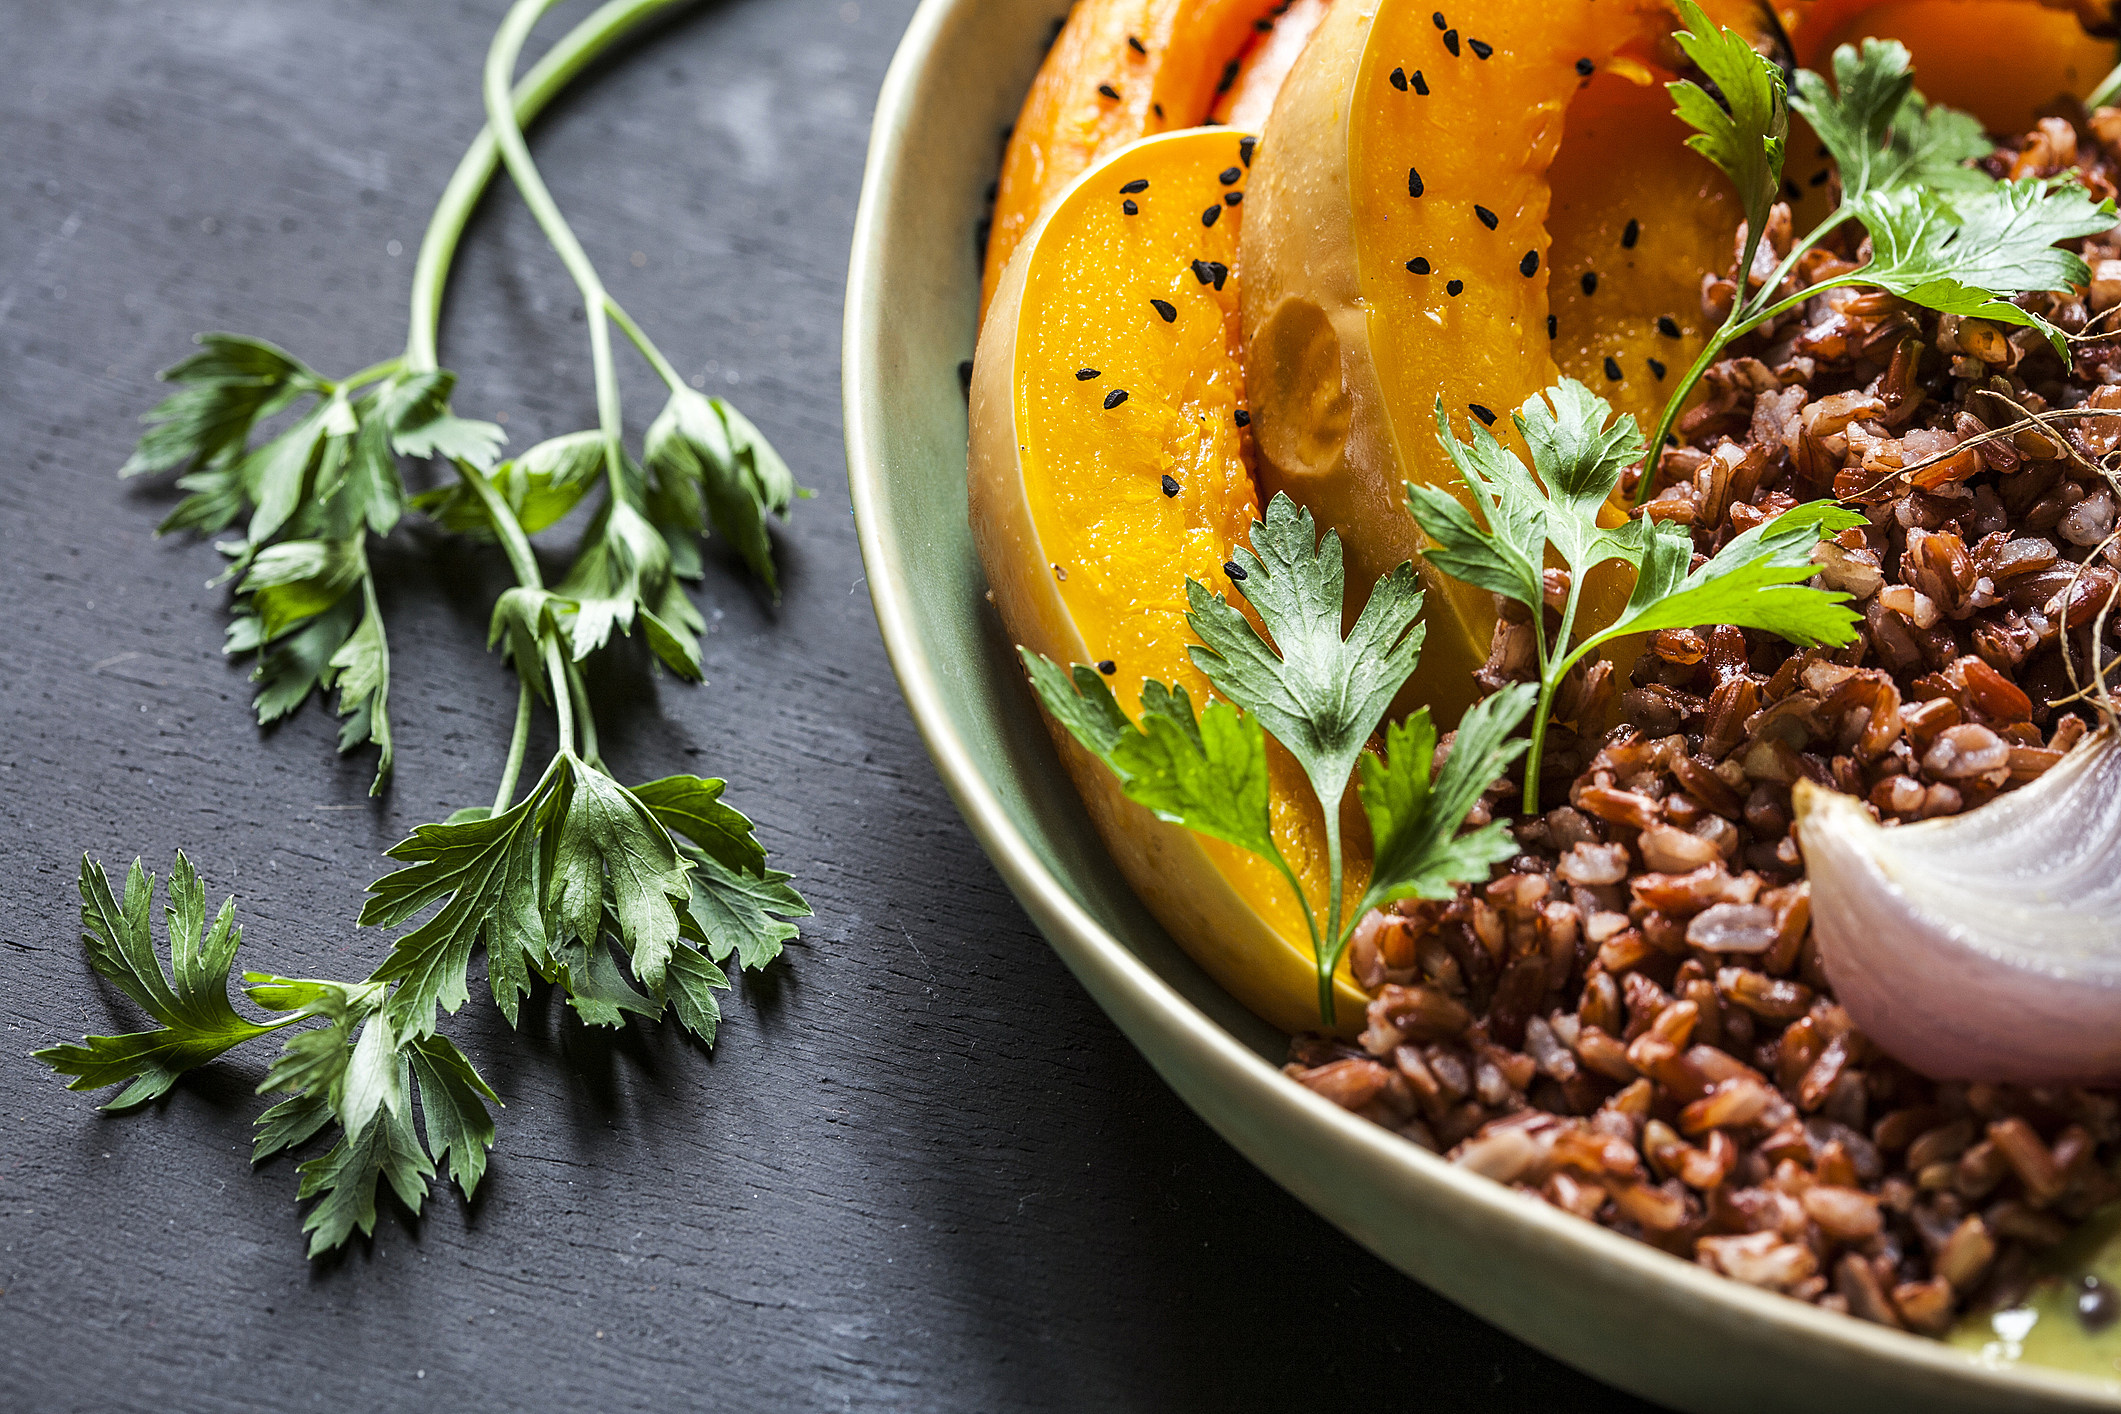 These Easy To Make Plant Based Dishes Celebrate Filipino Cuisine